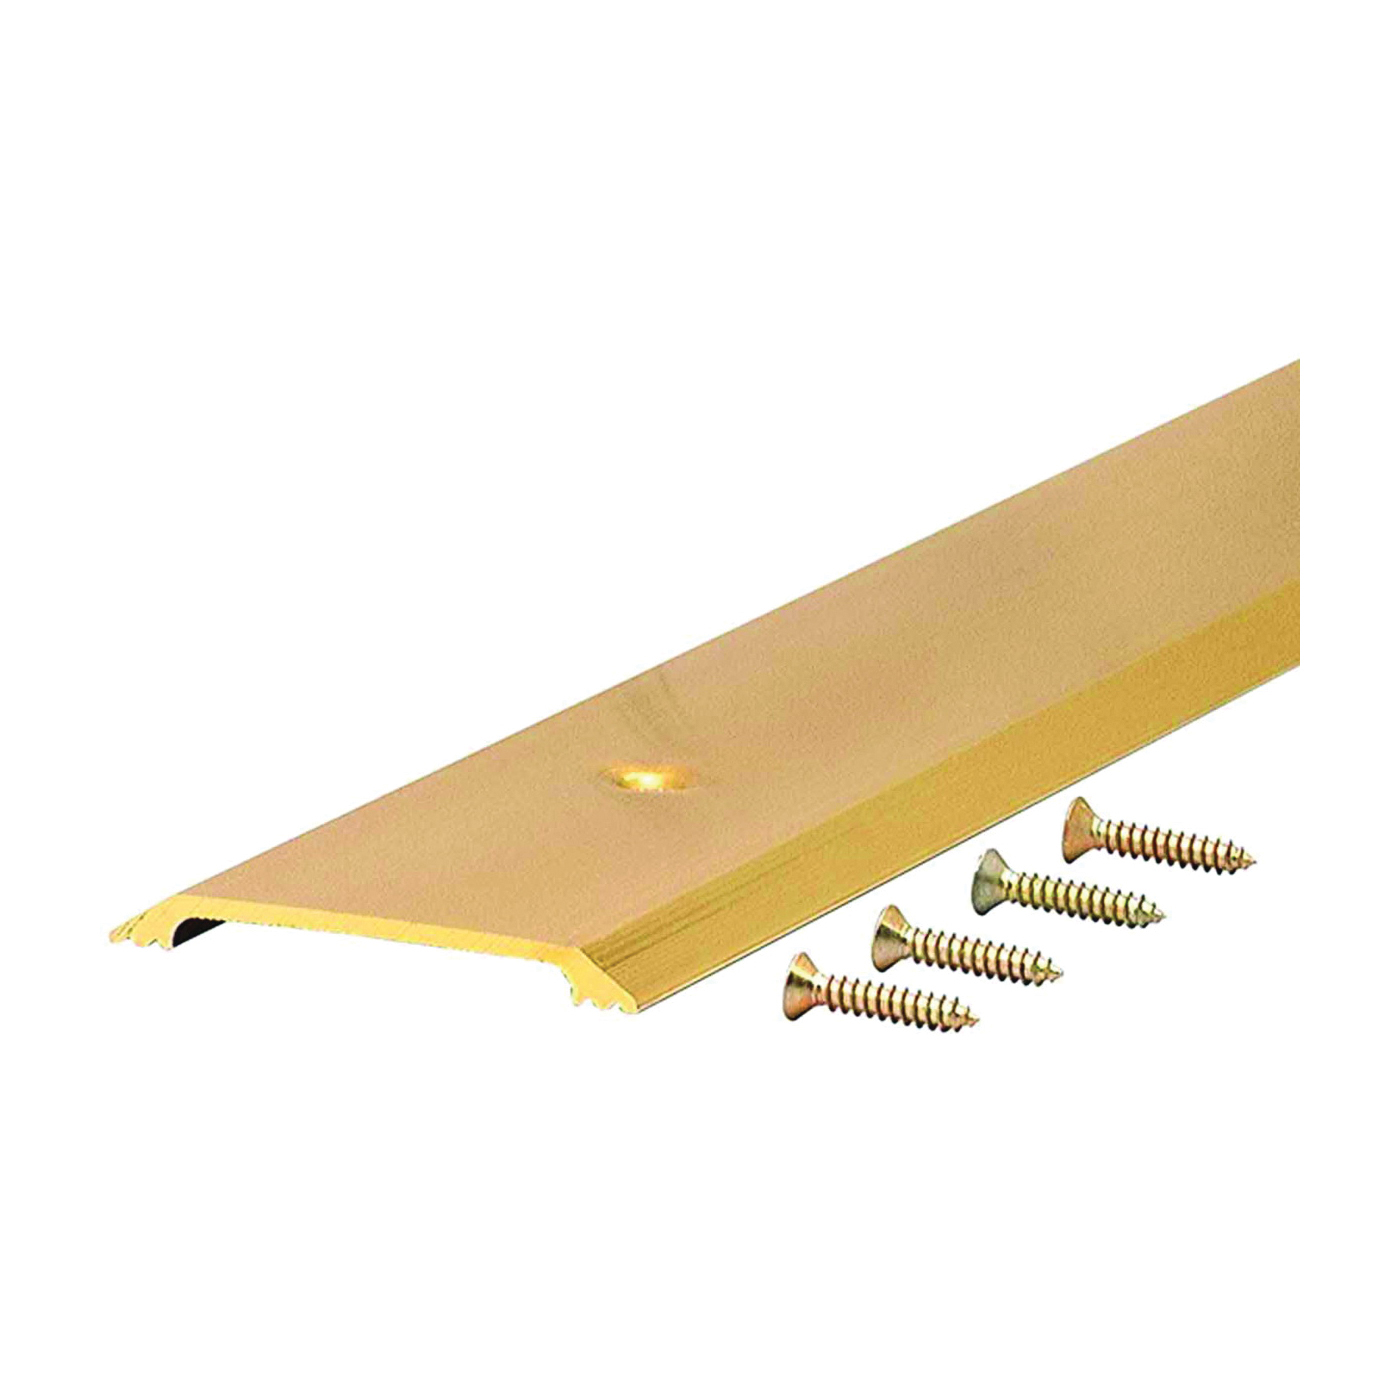 Picture of M-D 09613 Saddle Threshold, 36 in L, 2-1/2 in W, Aluminum, Bright Gold